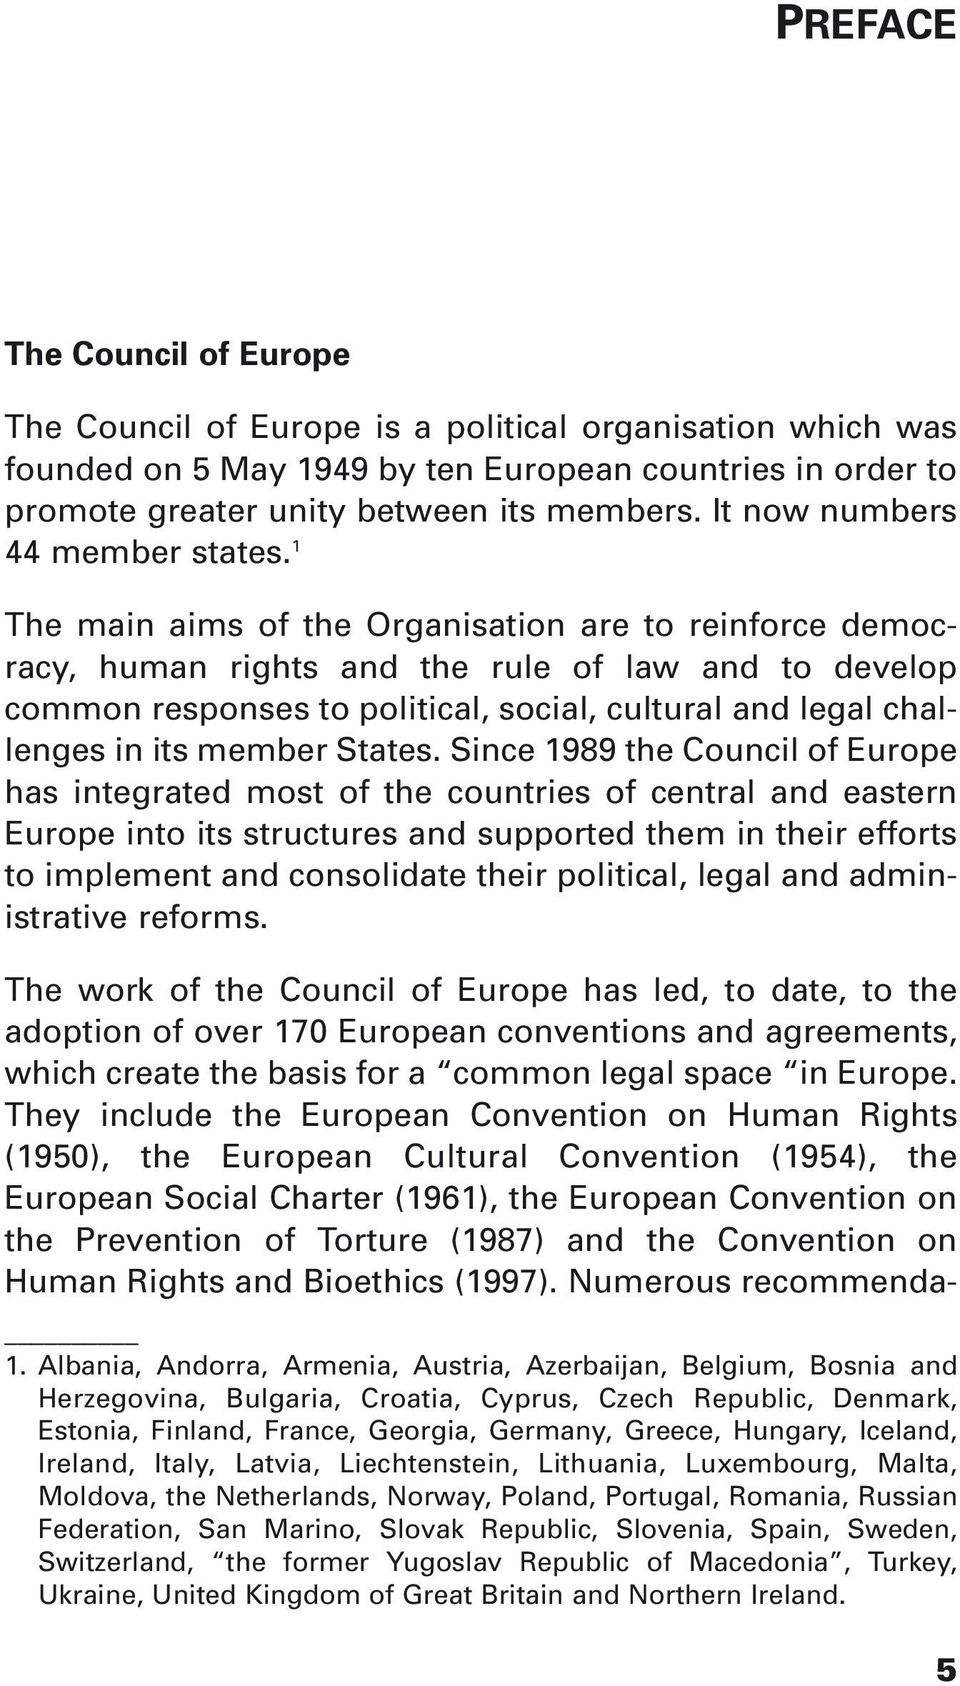 1 The main aims of the Organisation are to reinforce democracy, human rights and the rule of law and to develop common responses to political, social, cultural and legal challenges in its member